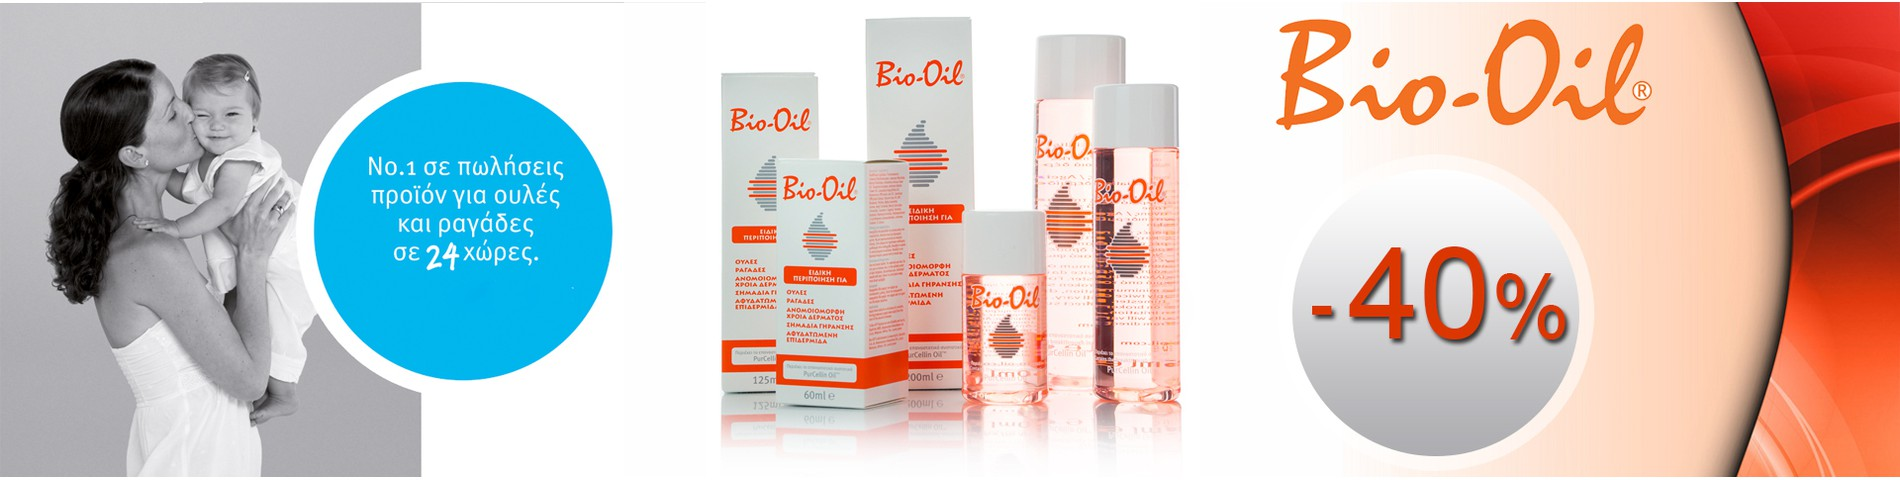 Bio oil desktop